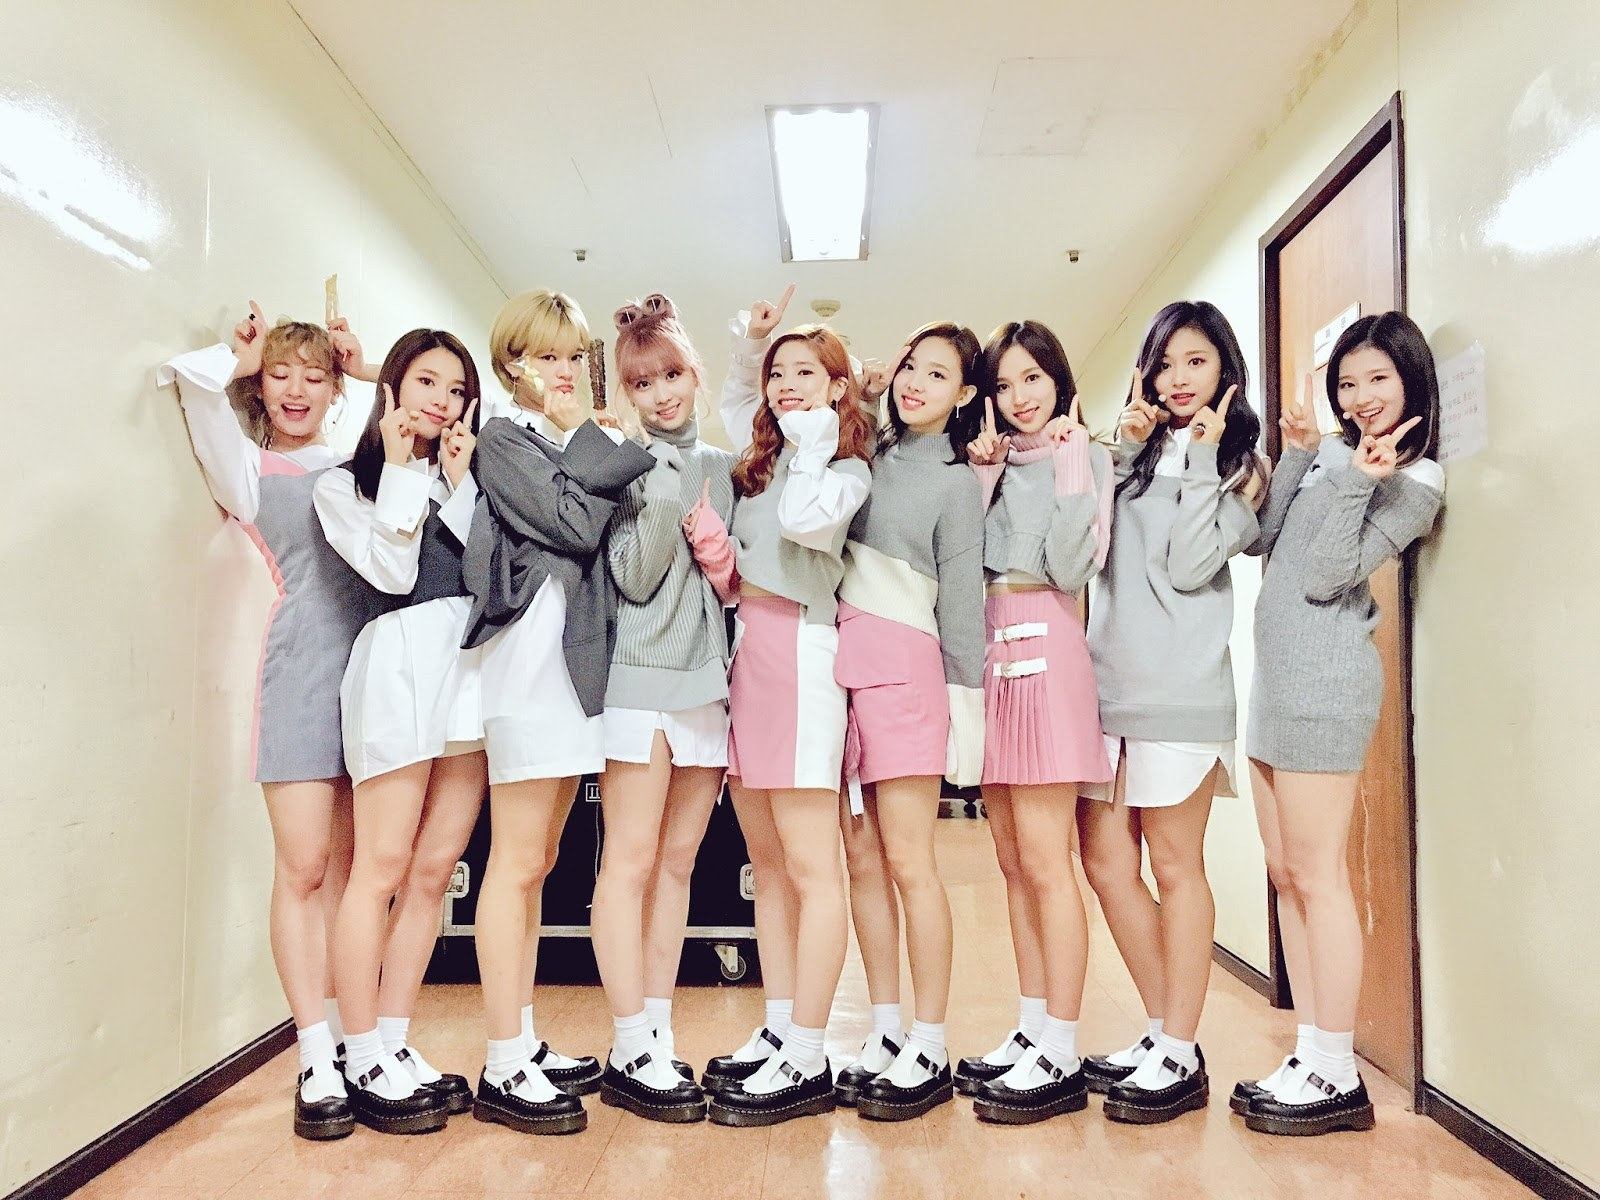 TWICE Is Helping To Mend Relations Between Korea And Japan - Koreaboo